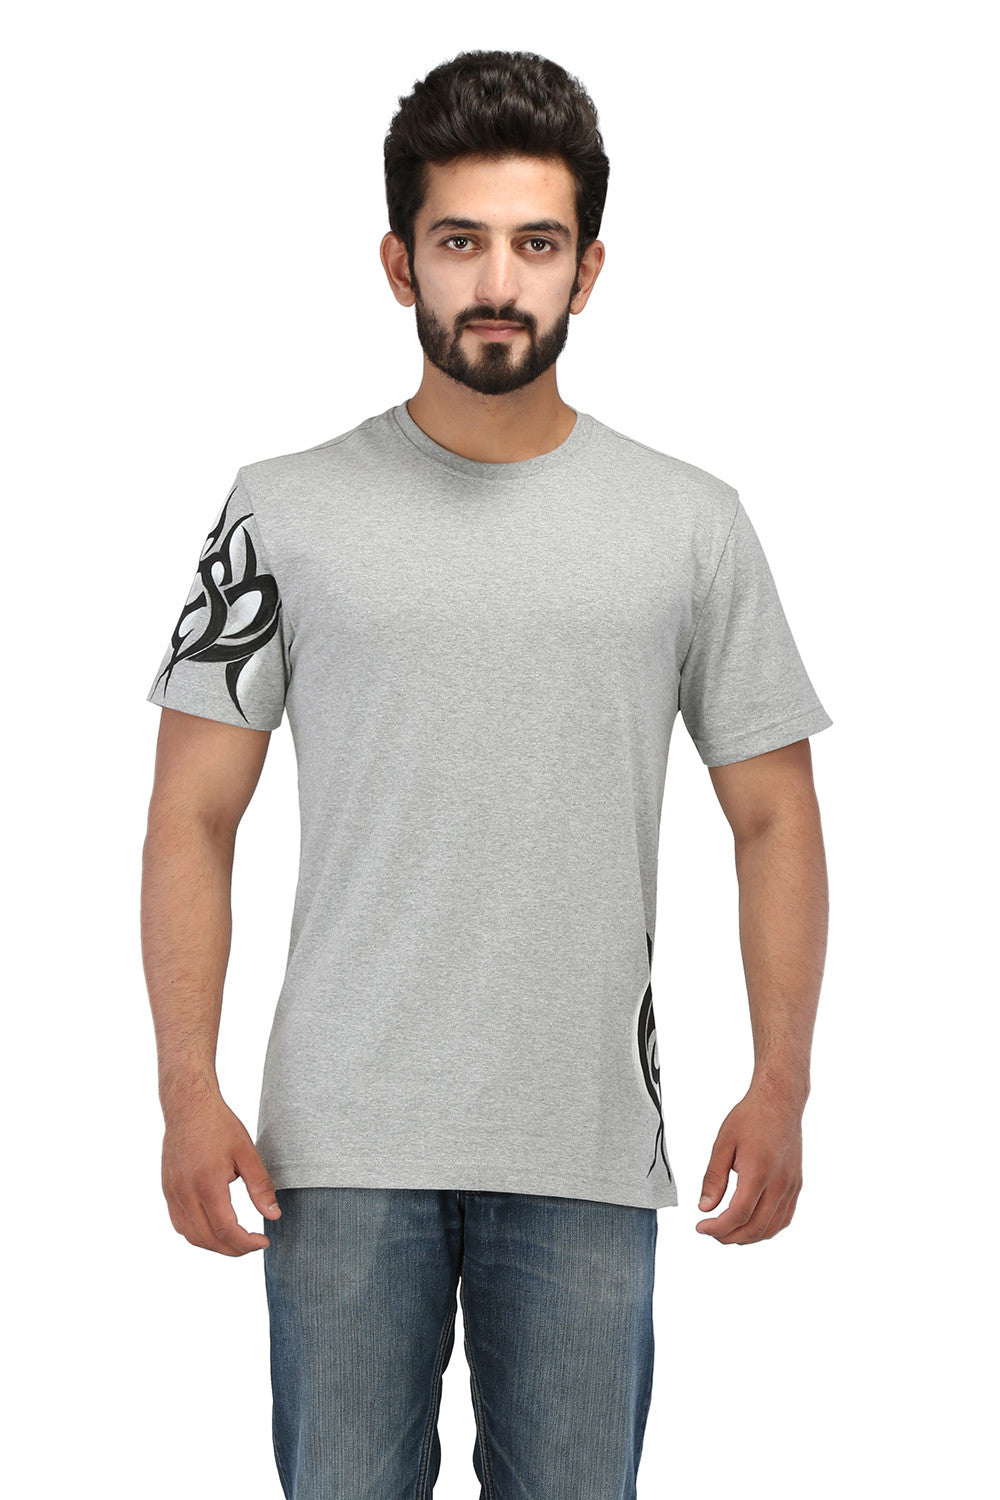 Hand-painted Tribal Muse Grey T-shirt - Rang Rage  - 1